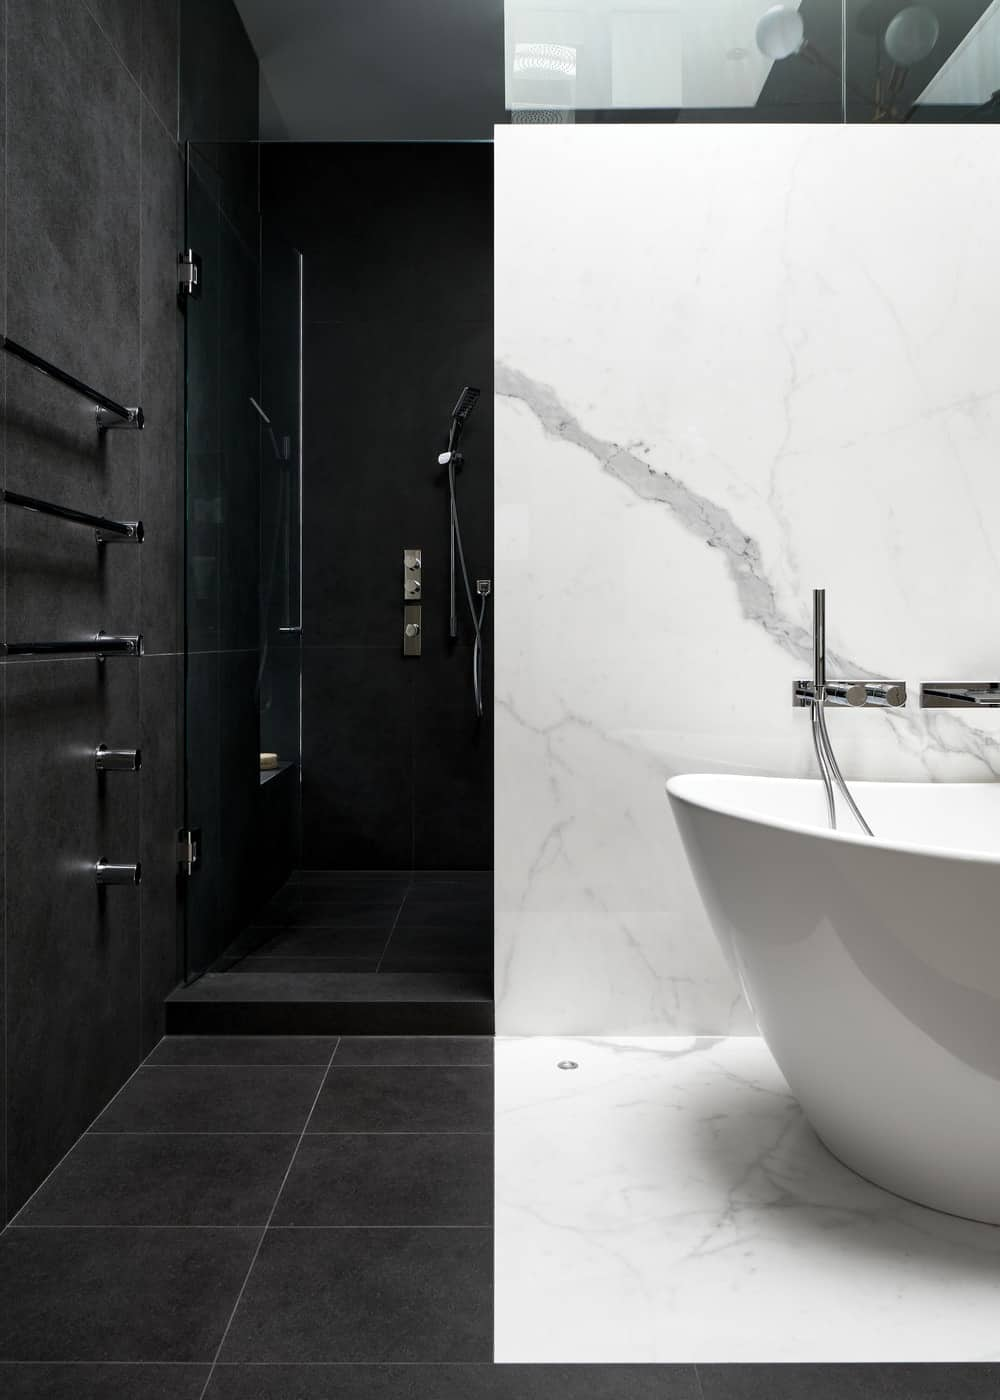 This is a close look at the walk-in shower area behind the bathtub wall with dark gray tiles on its walls and floor.